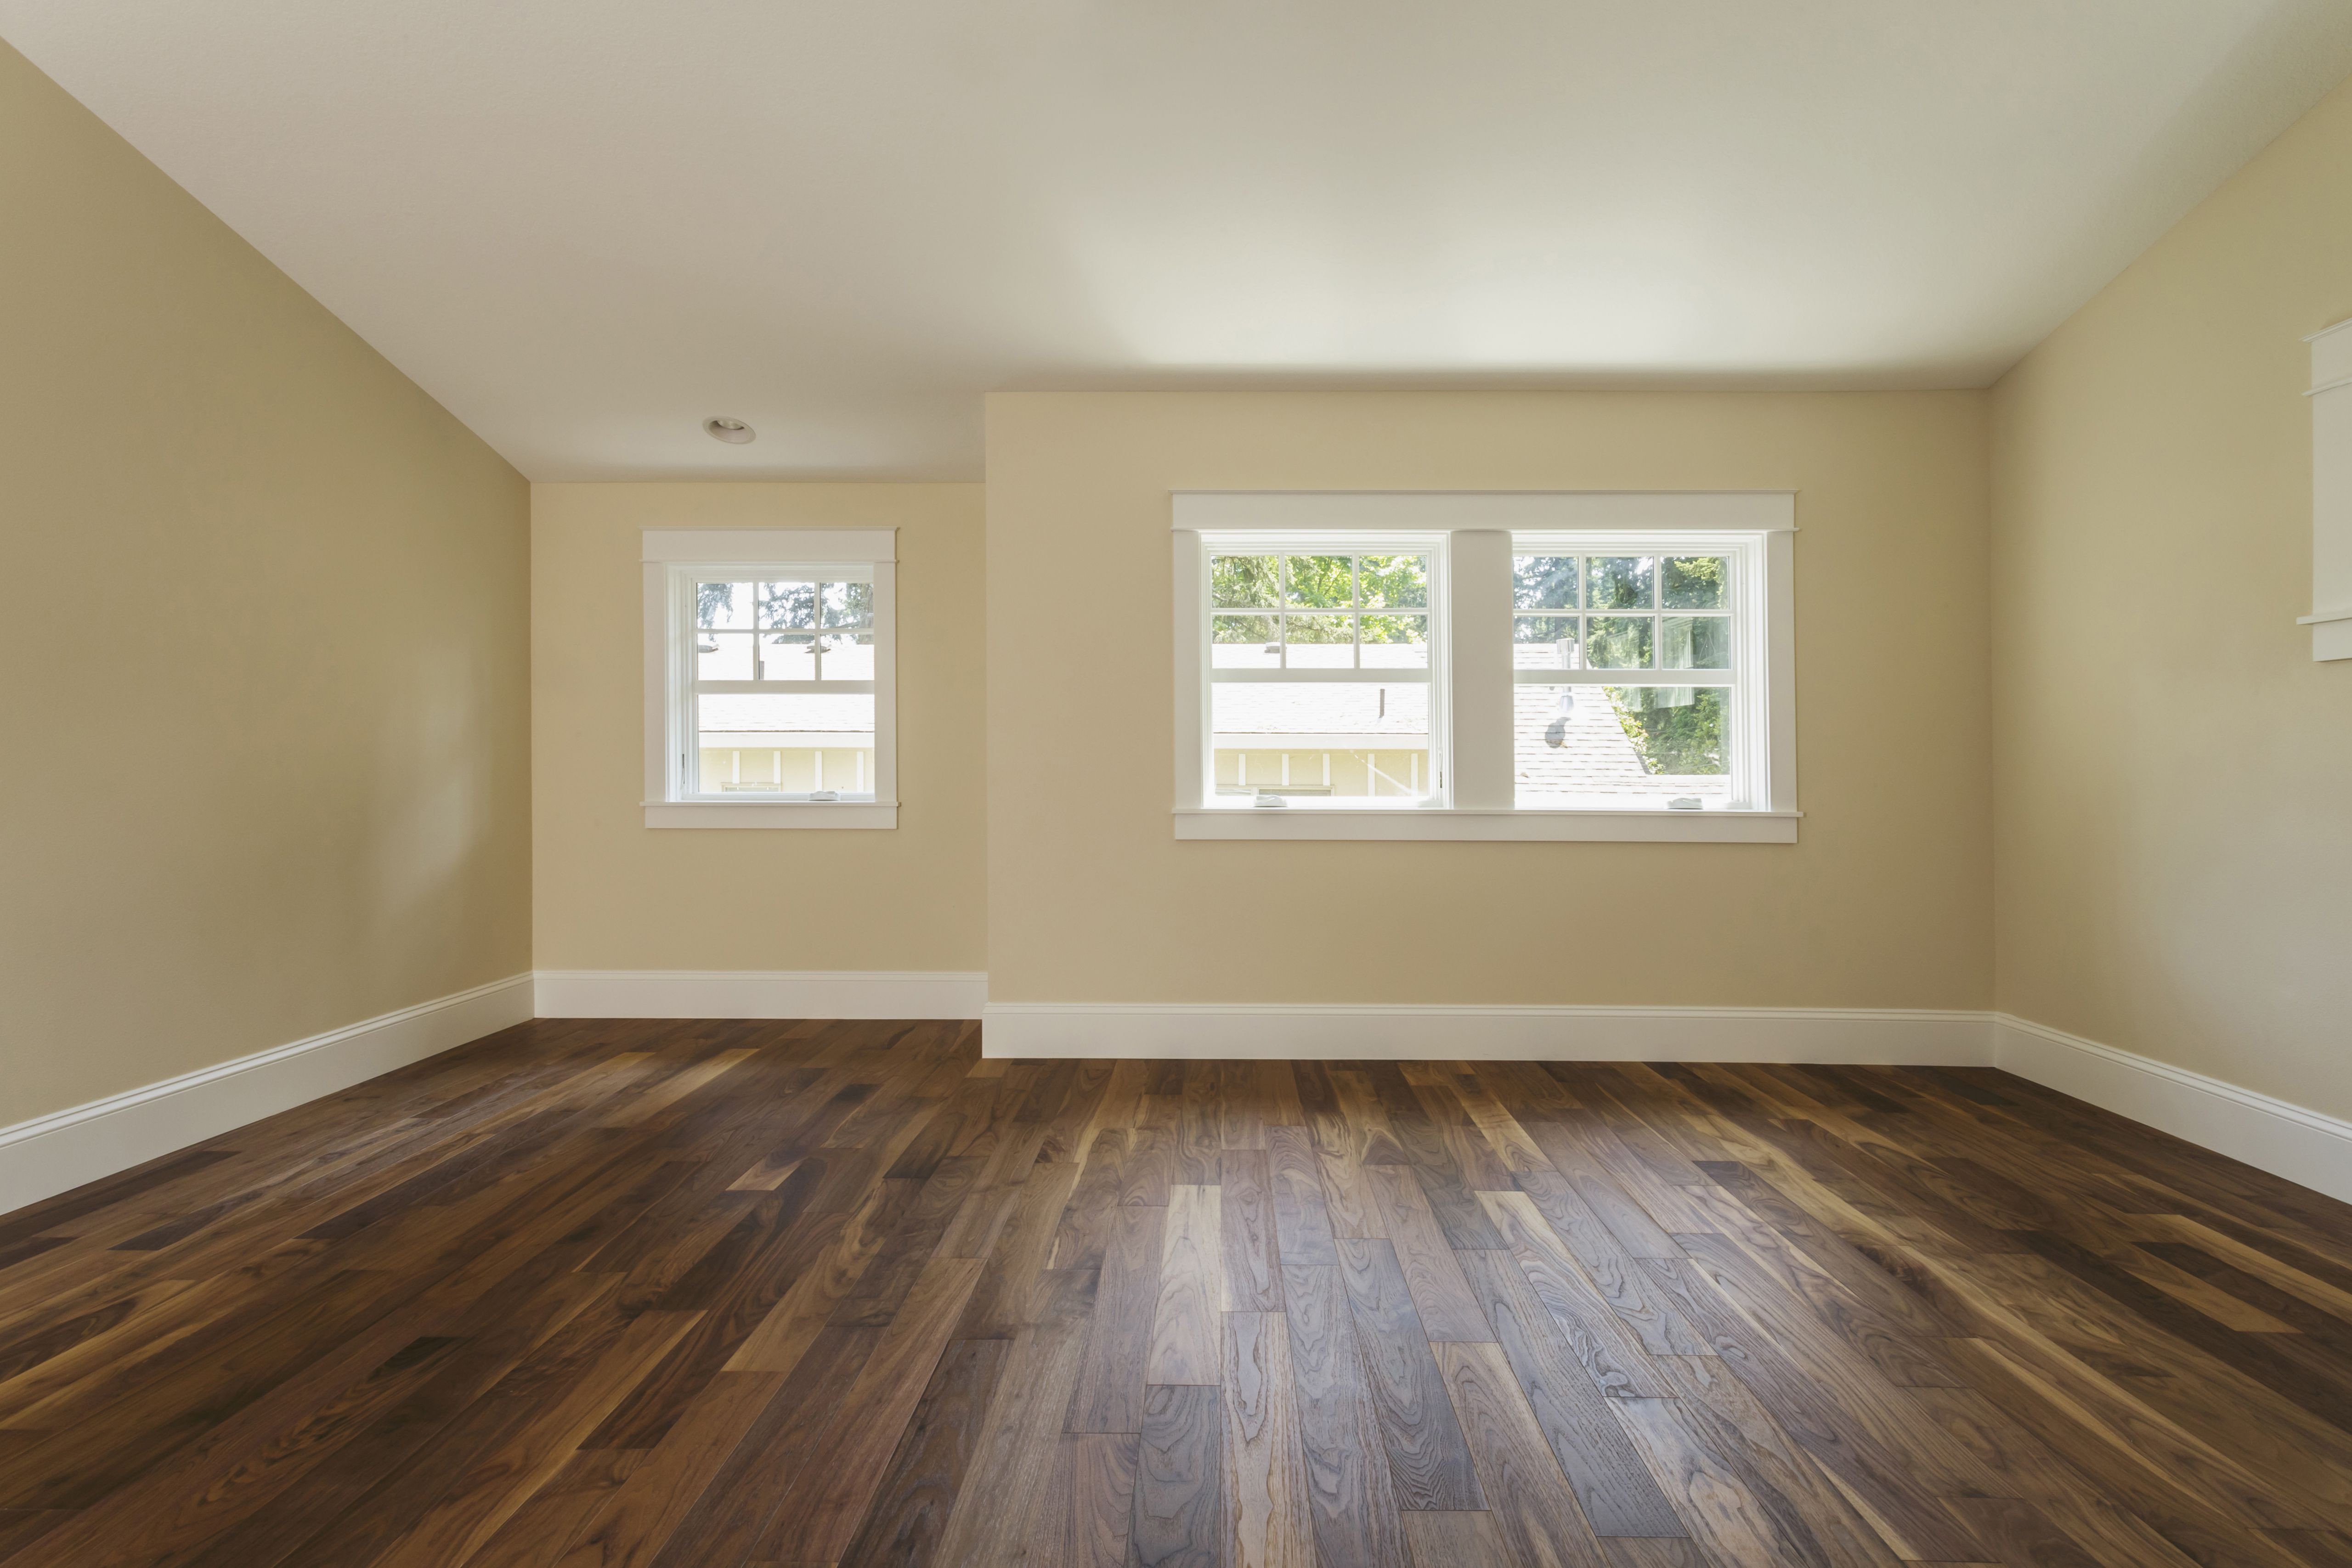 engineered hardwood flooring in bathrooms of its easy and fast to install plank vinyl flooring inside wooden floor in empty bedroom 482143001 588bd5f45f9b5874eebd56e9